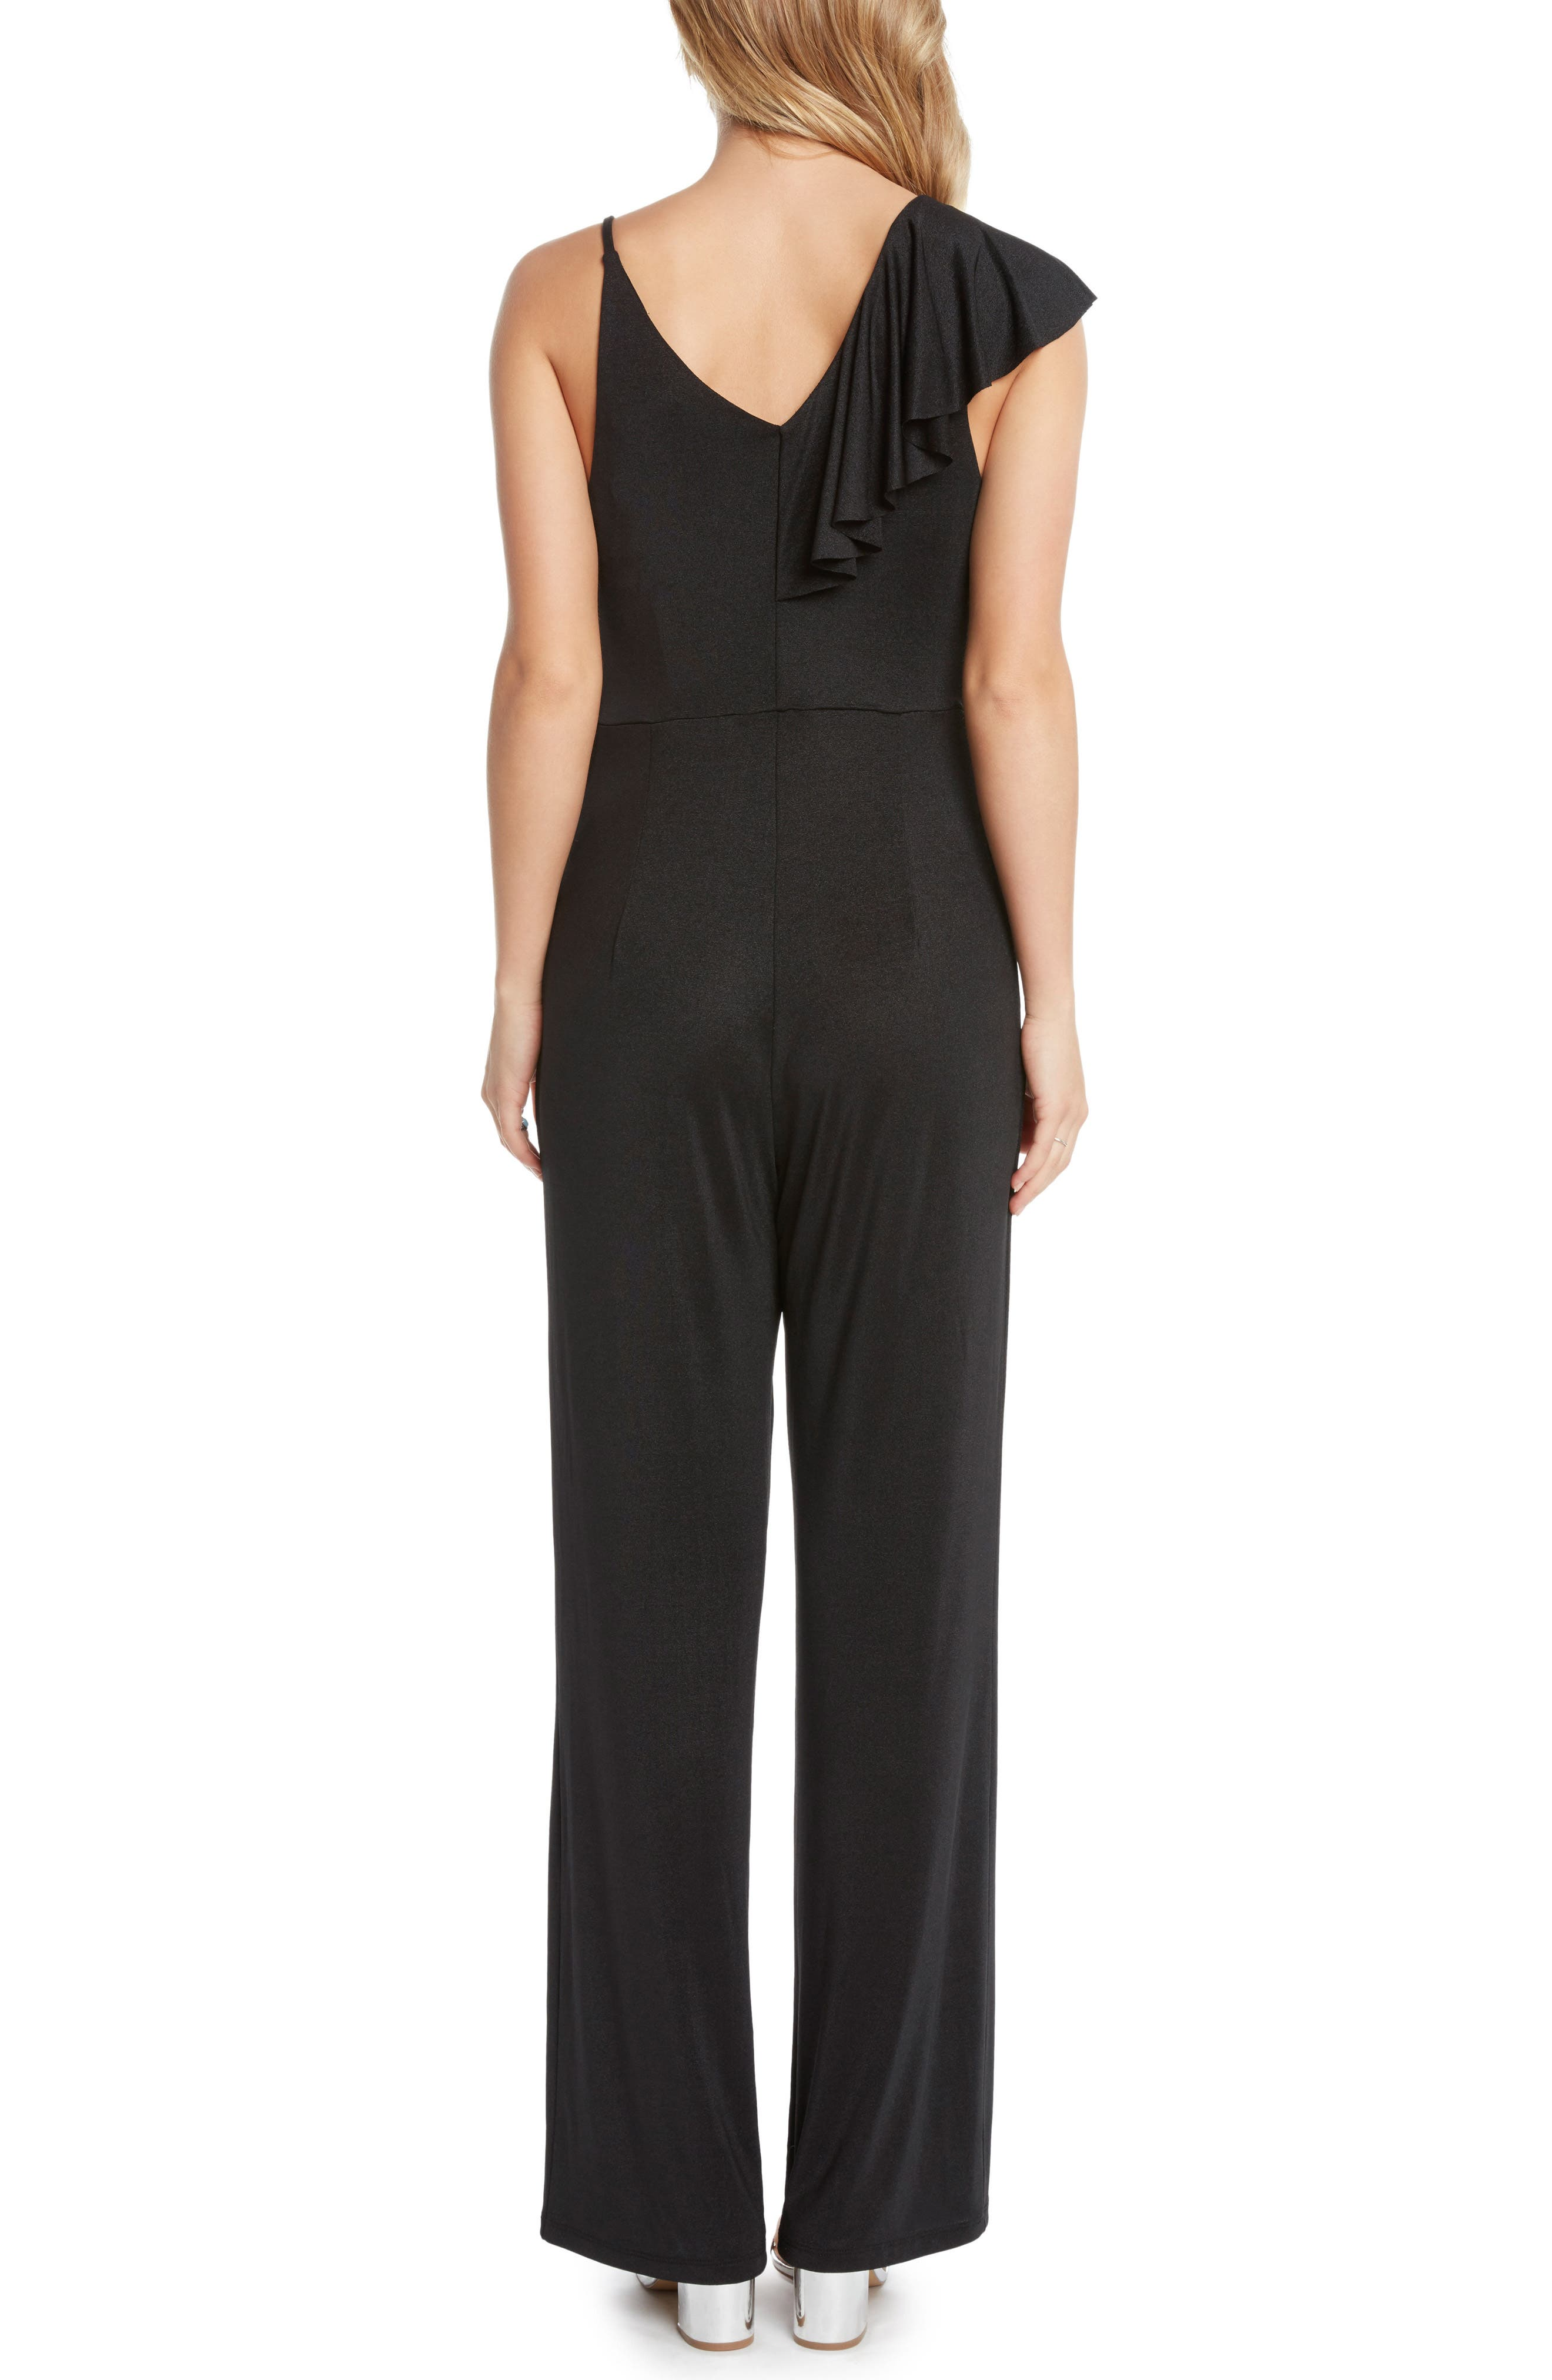 Ruffle Jumpsuit,                             Alternate thumbnail 2, color,